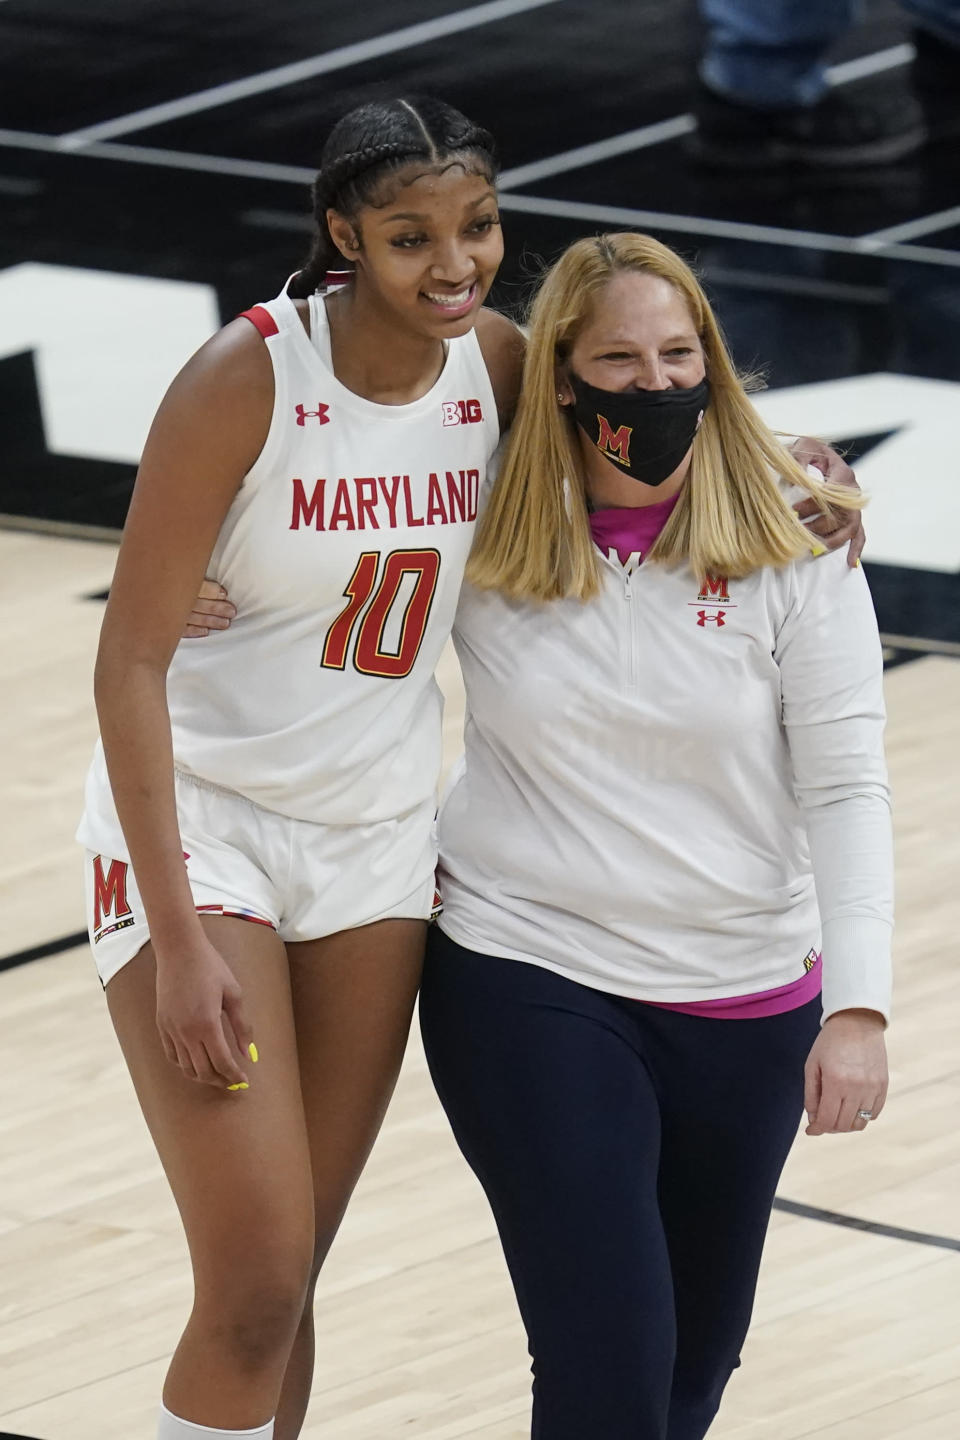 Maryland head coach Brenda Frese talks with Angel Reese following an NCAA college basketball semifinal game against Northwestern at the Big Ten Conference tournament, Friday, March 12, 2021, in Indianapolis. Maryland won 85-52. (AP Photo/Darron Cummings)